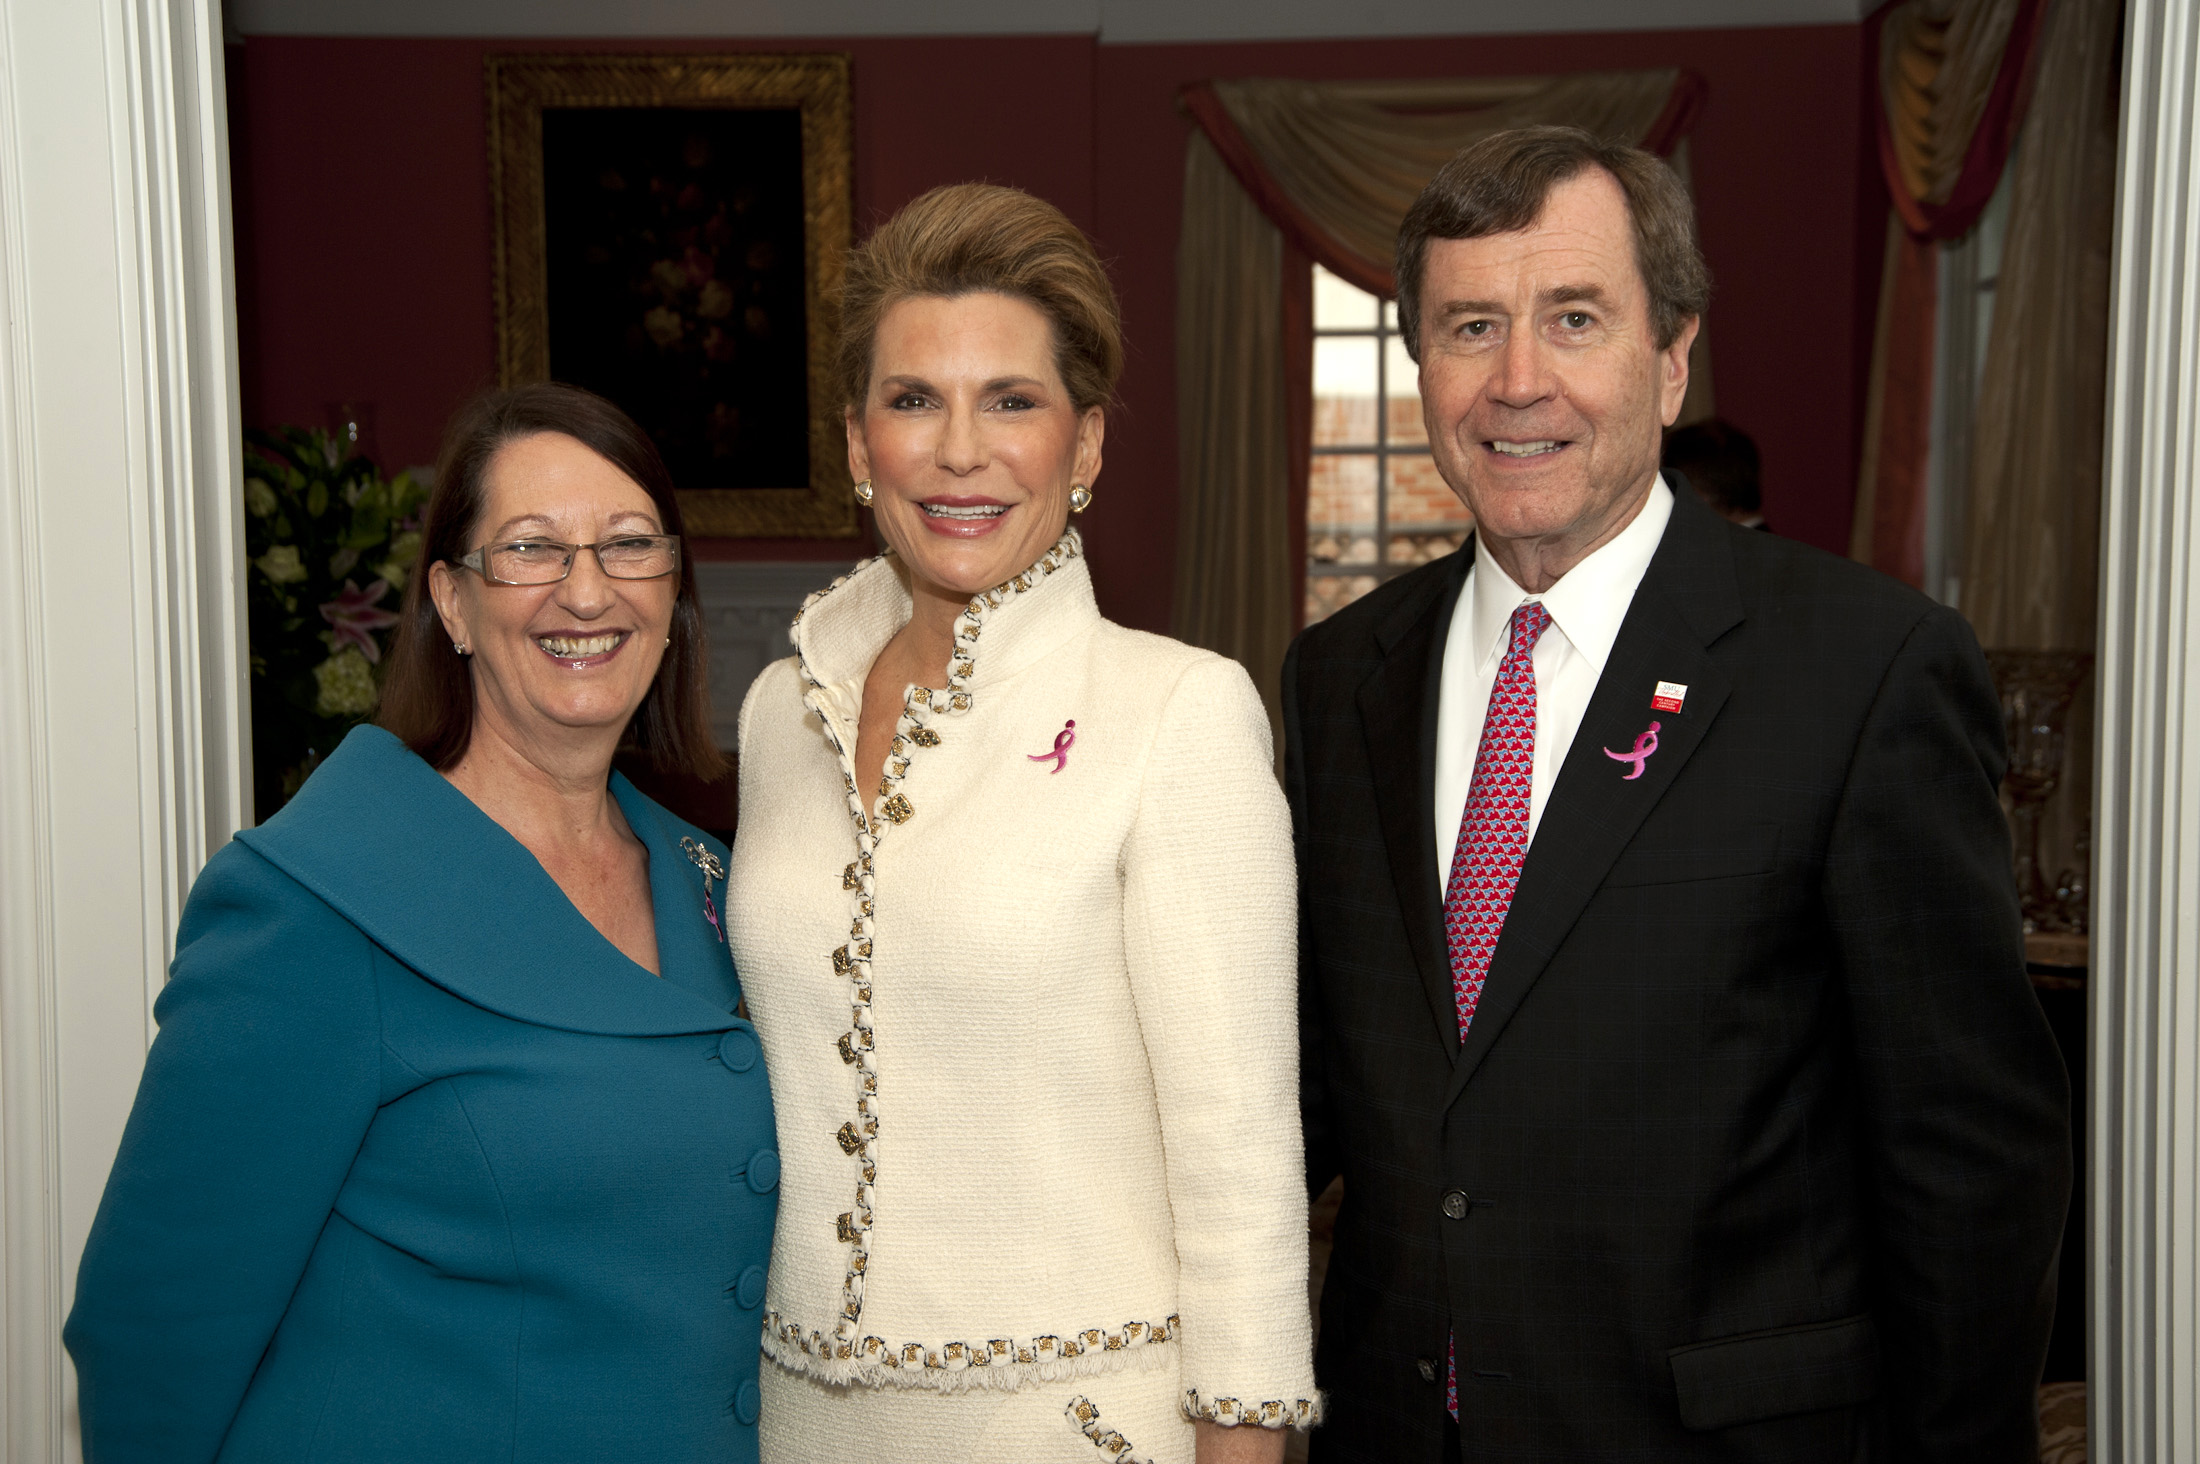 (l. to r.) Dean Gillian M. McCombs, Director of SMU's Central University Libraries, Ambassador Nancy G. Brinker, founder and CEO of Susan G. Komen for the Cure, and SMU President R. Gerald Turner at a reception announcing the partnership between SMU's DeGolyer Library and Susan G. Komen for the Cure® to preserve and chronicle the history of the international organization dedicated to fighting breast cancer.